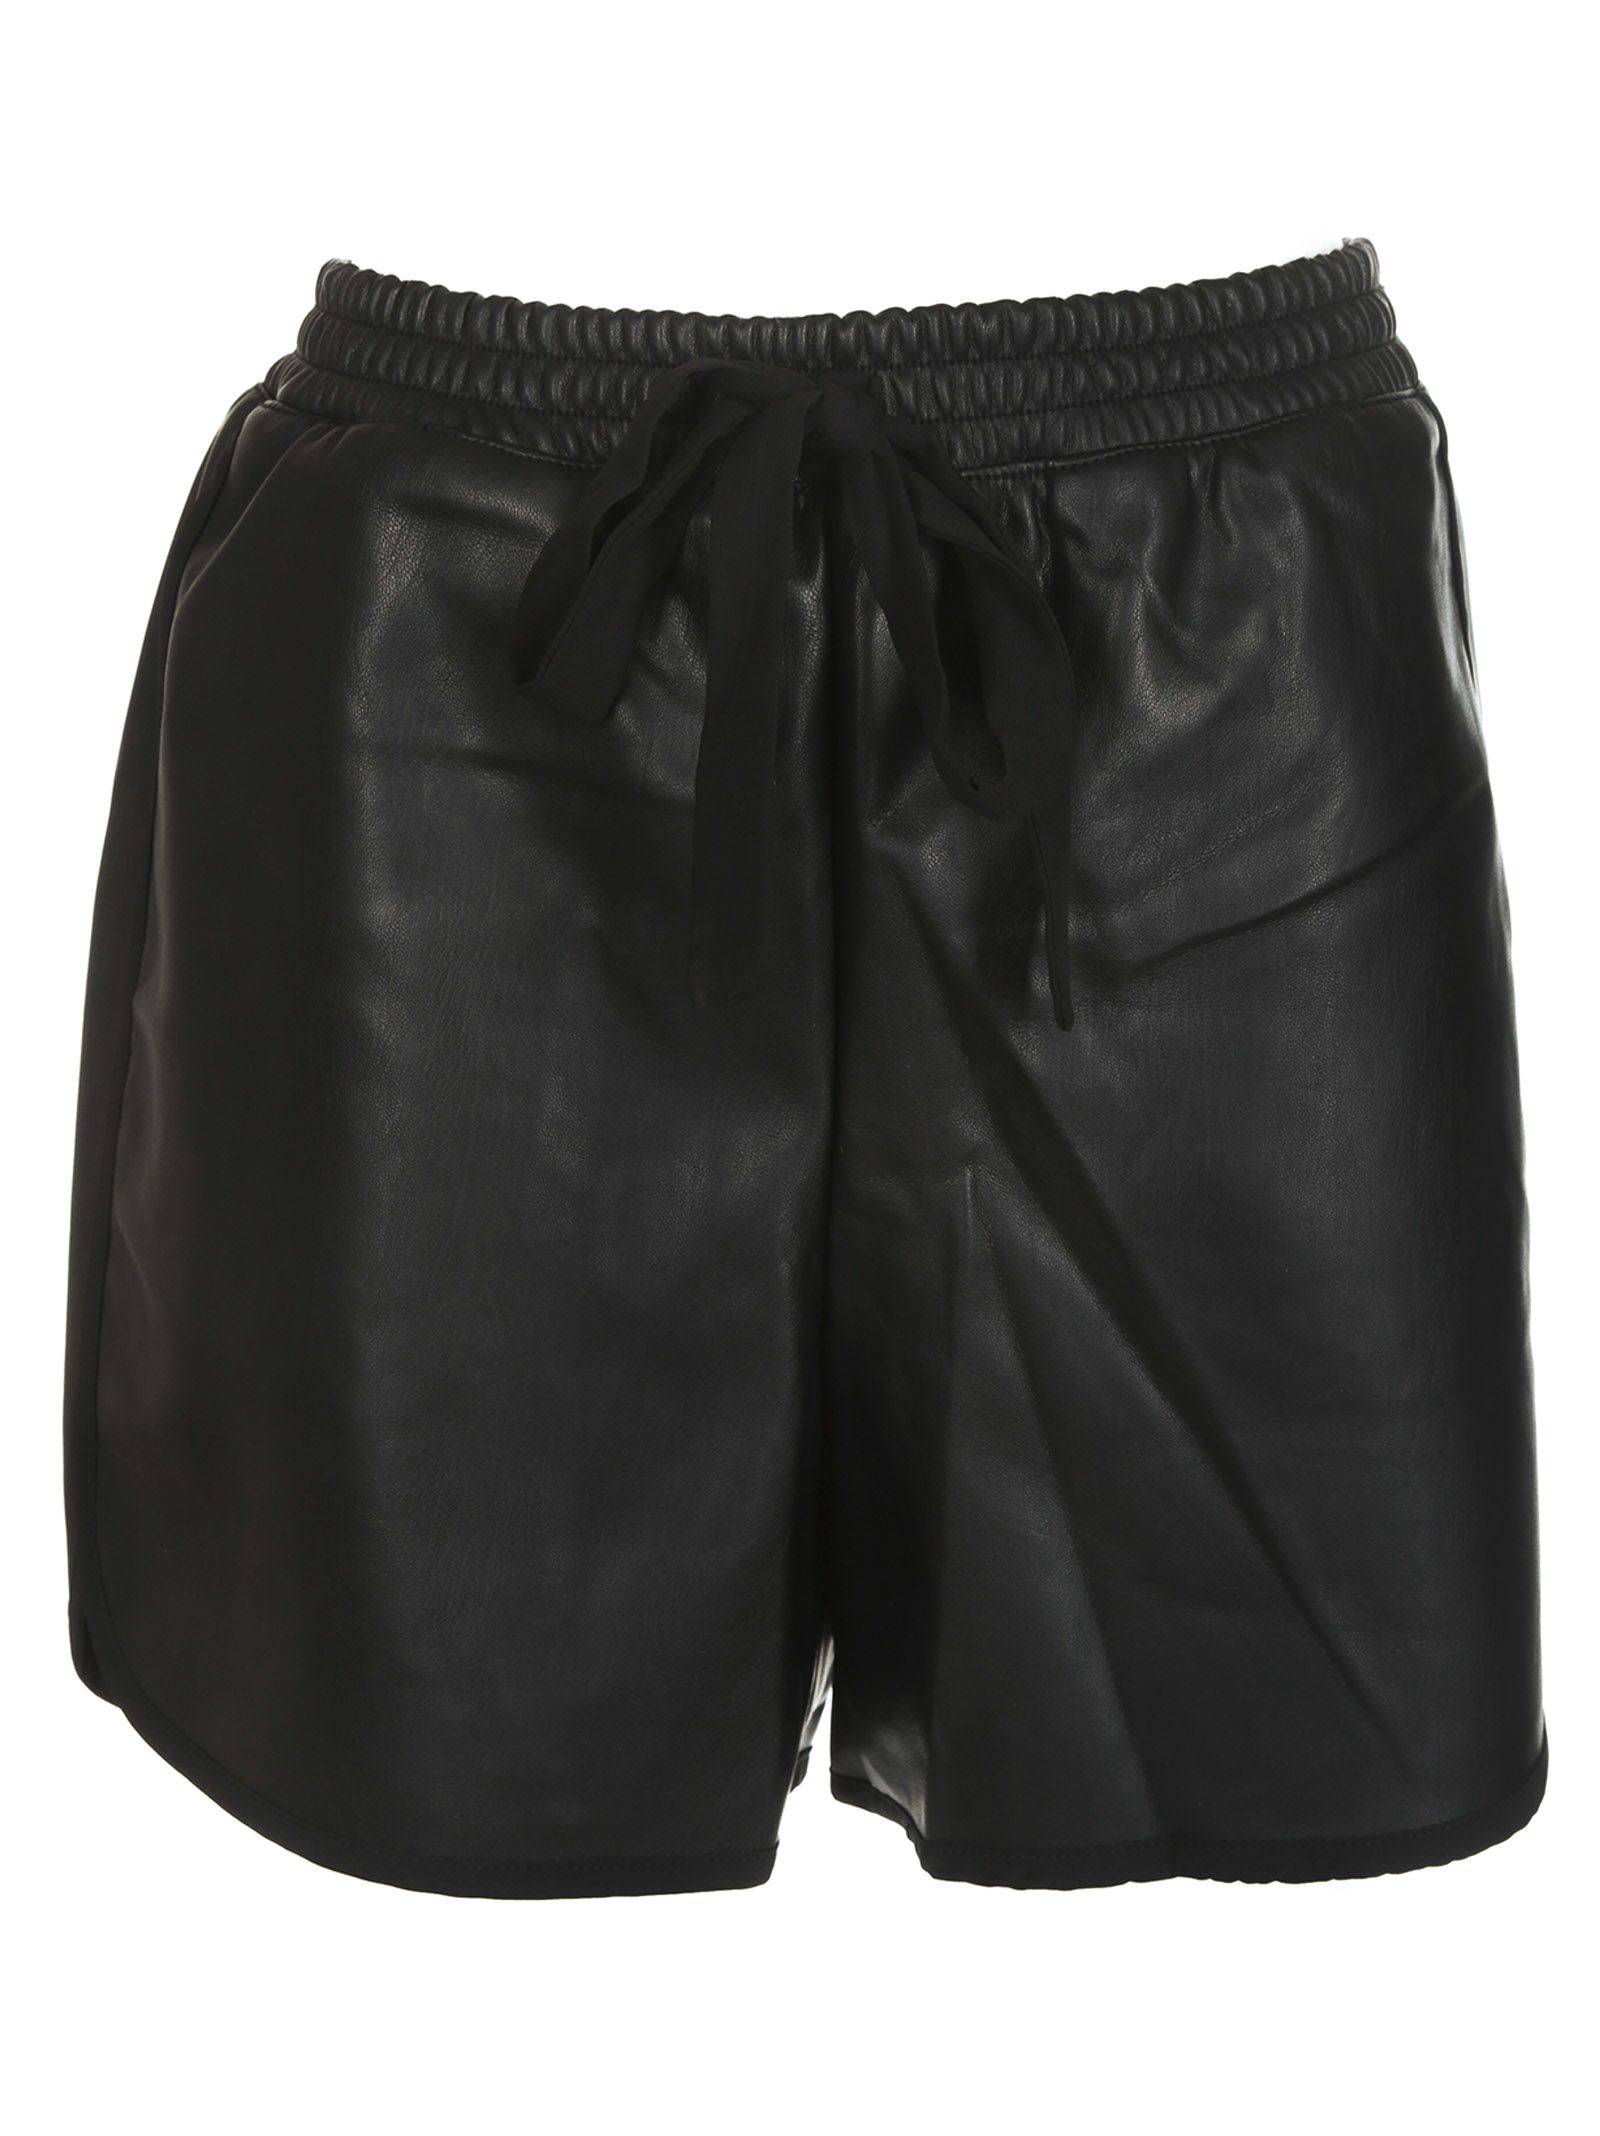 Twin-set Elasticated Shorts